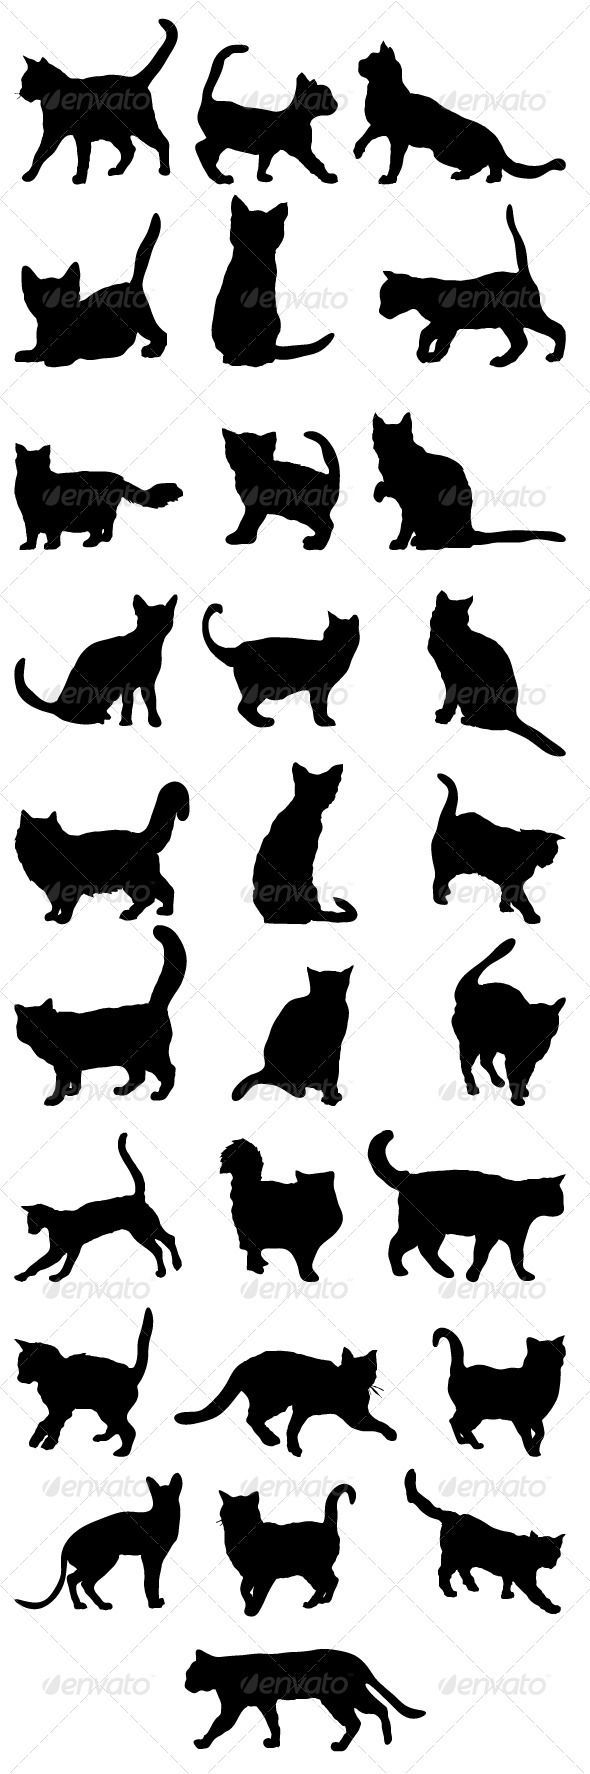 pin by kolvin miller on tattoos cat silhouette. Black Bedroom Furniture Sets. Home Design Ideas